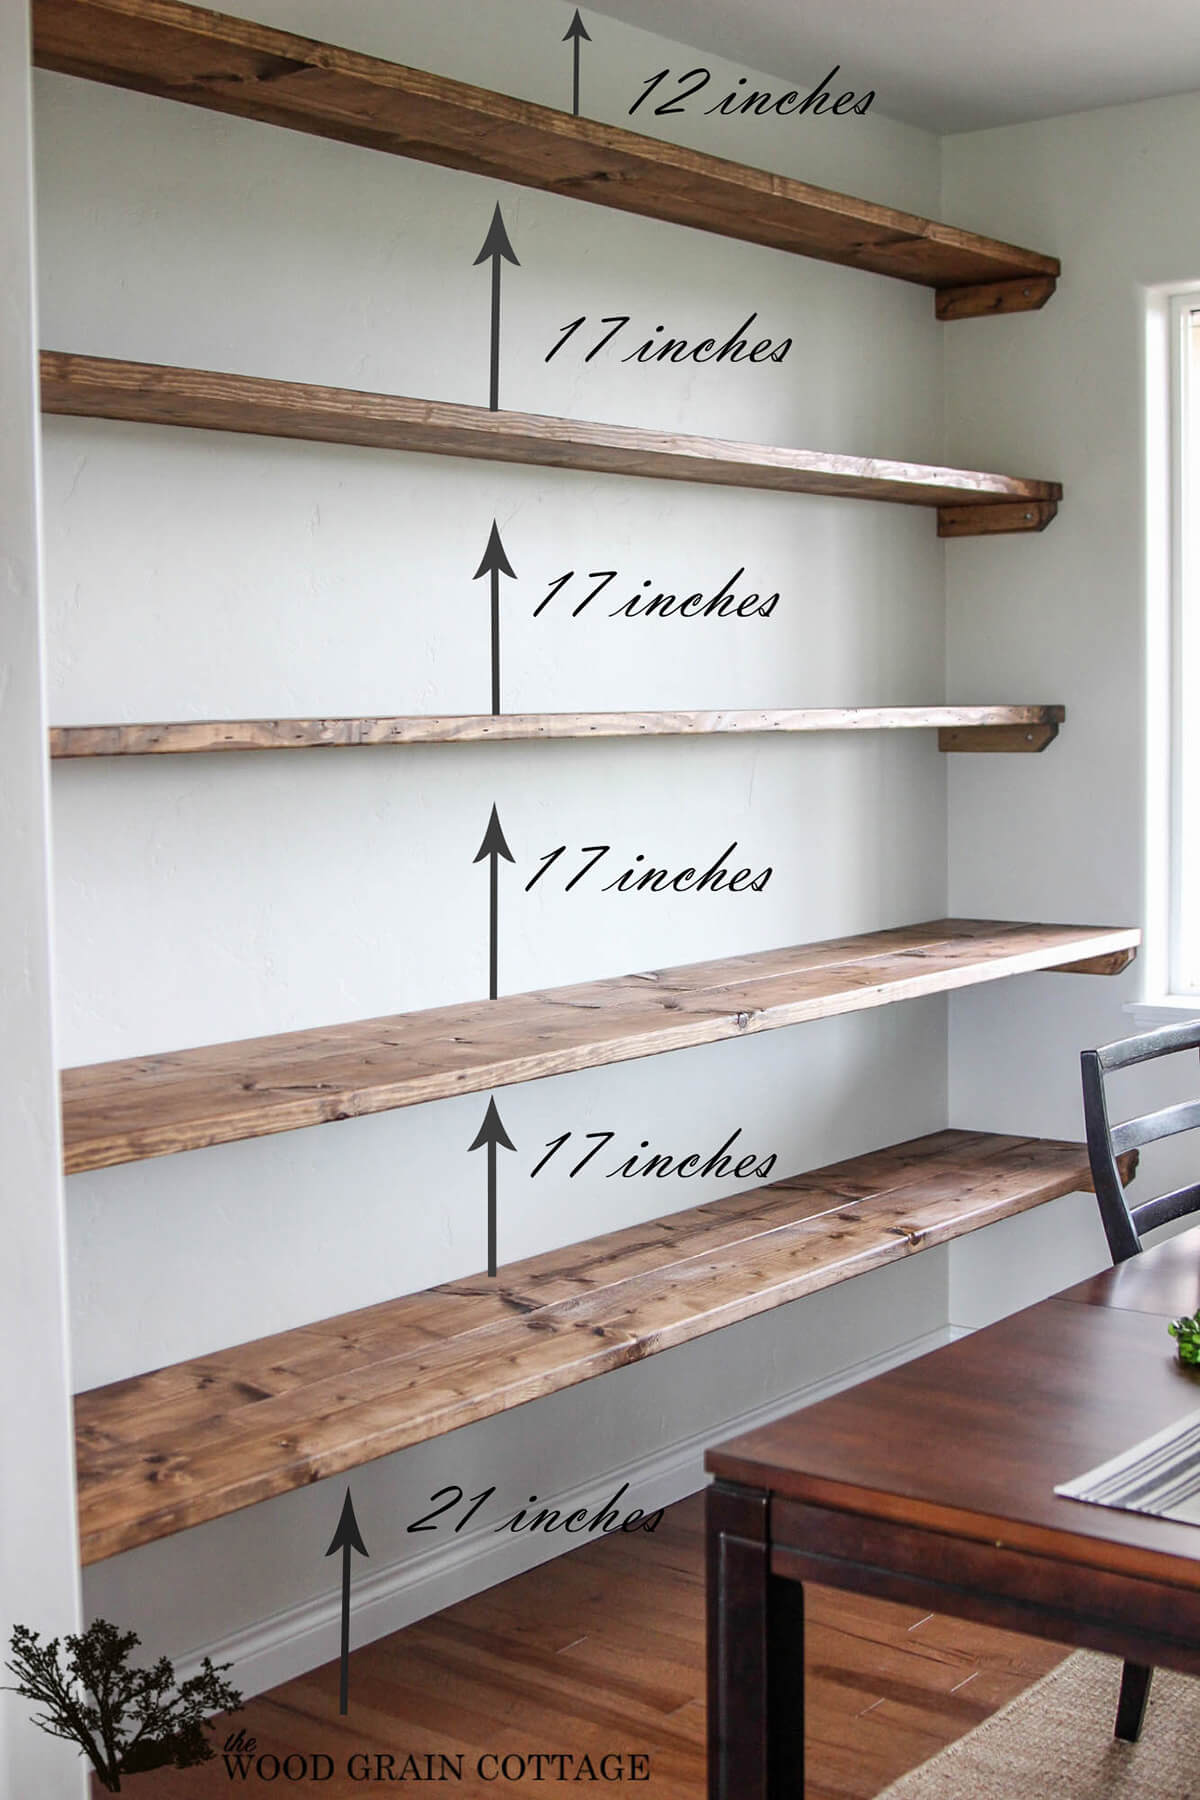 best diy floating shelf ideas and designs for homebnc building wall shelves entire stacked shelving your dining area oak box corner sky table work garage storage ture ledge